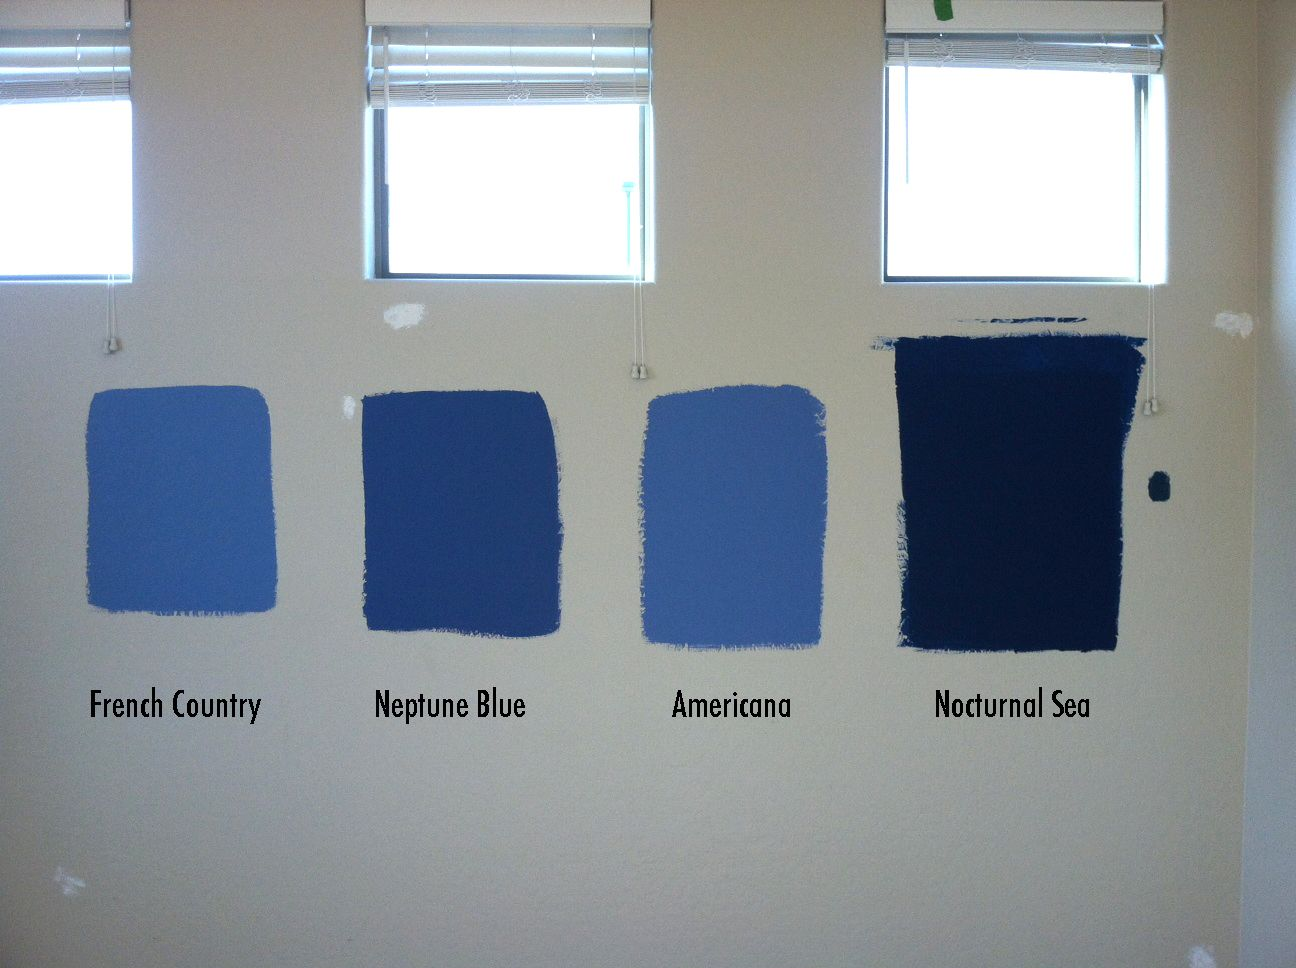 Blues For The Bedroom From Behr Paints French Country Neptune Blue Americana